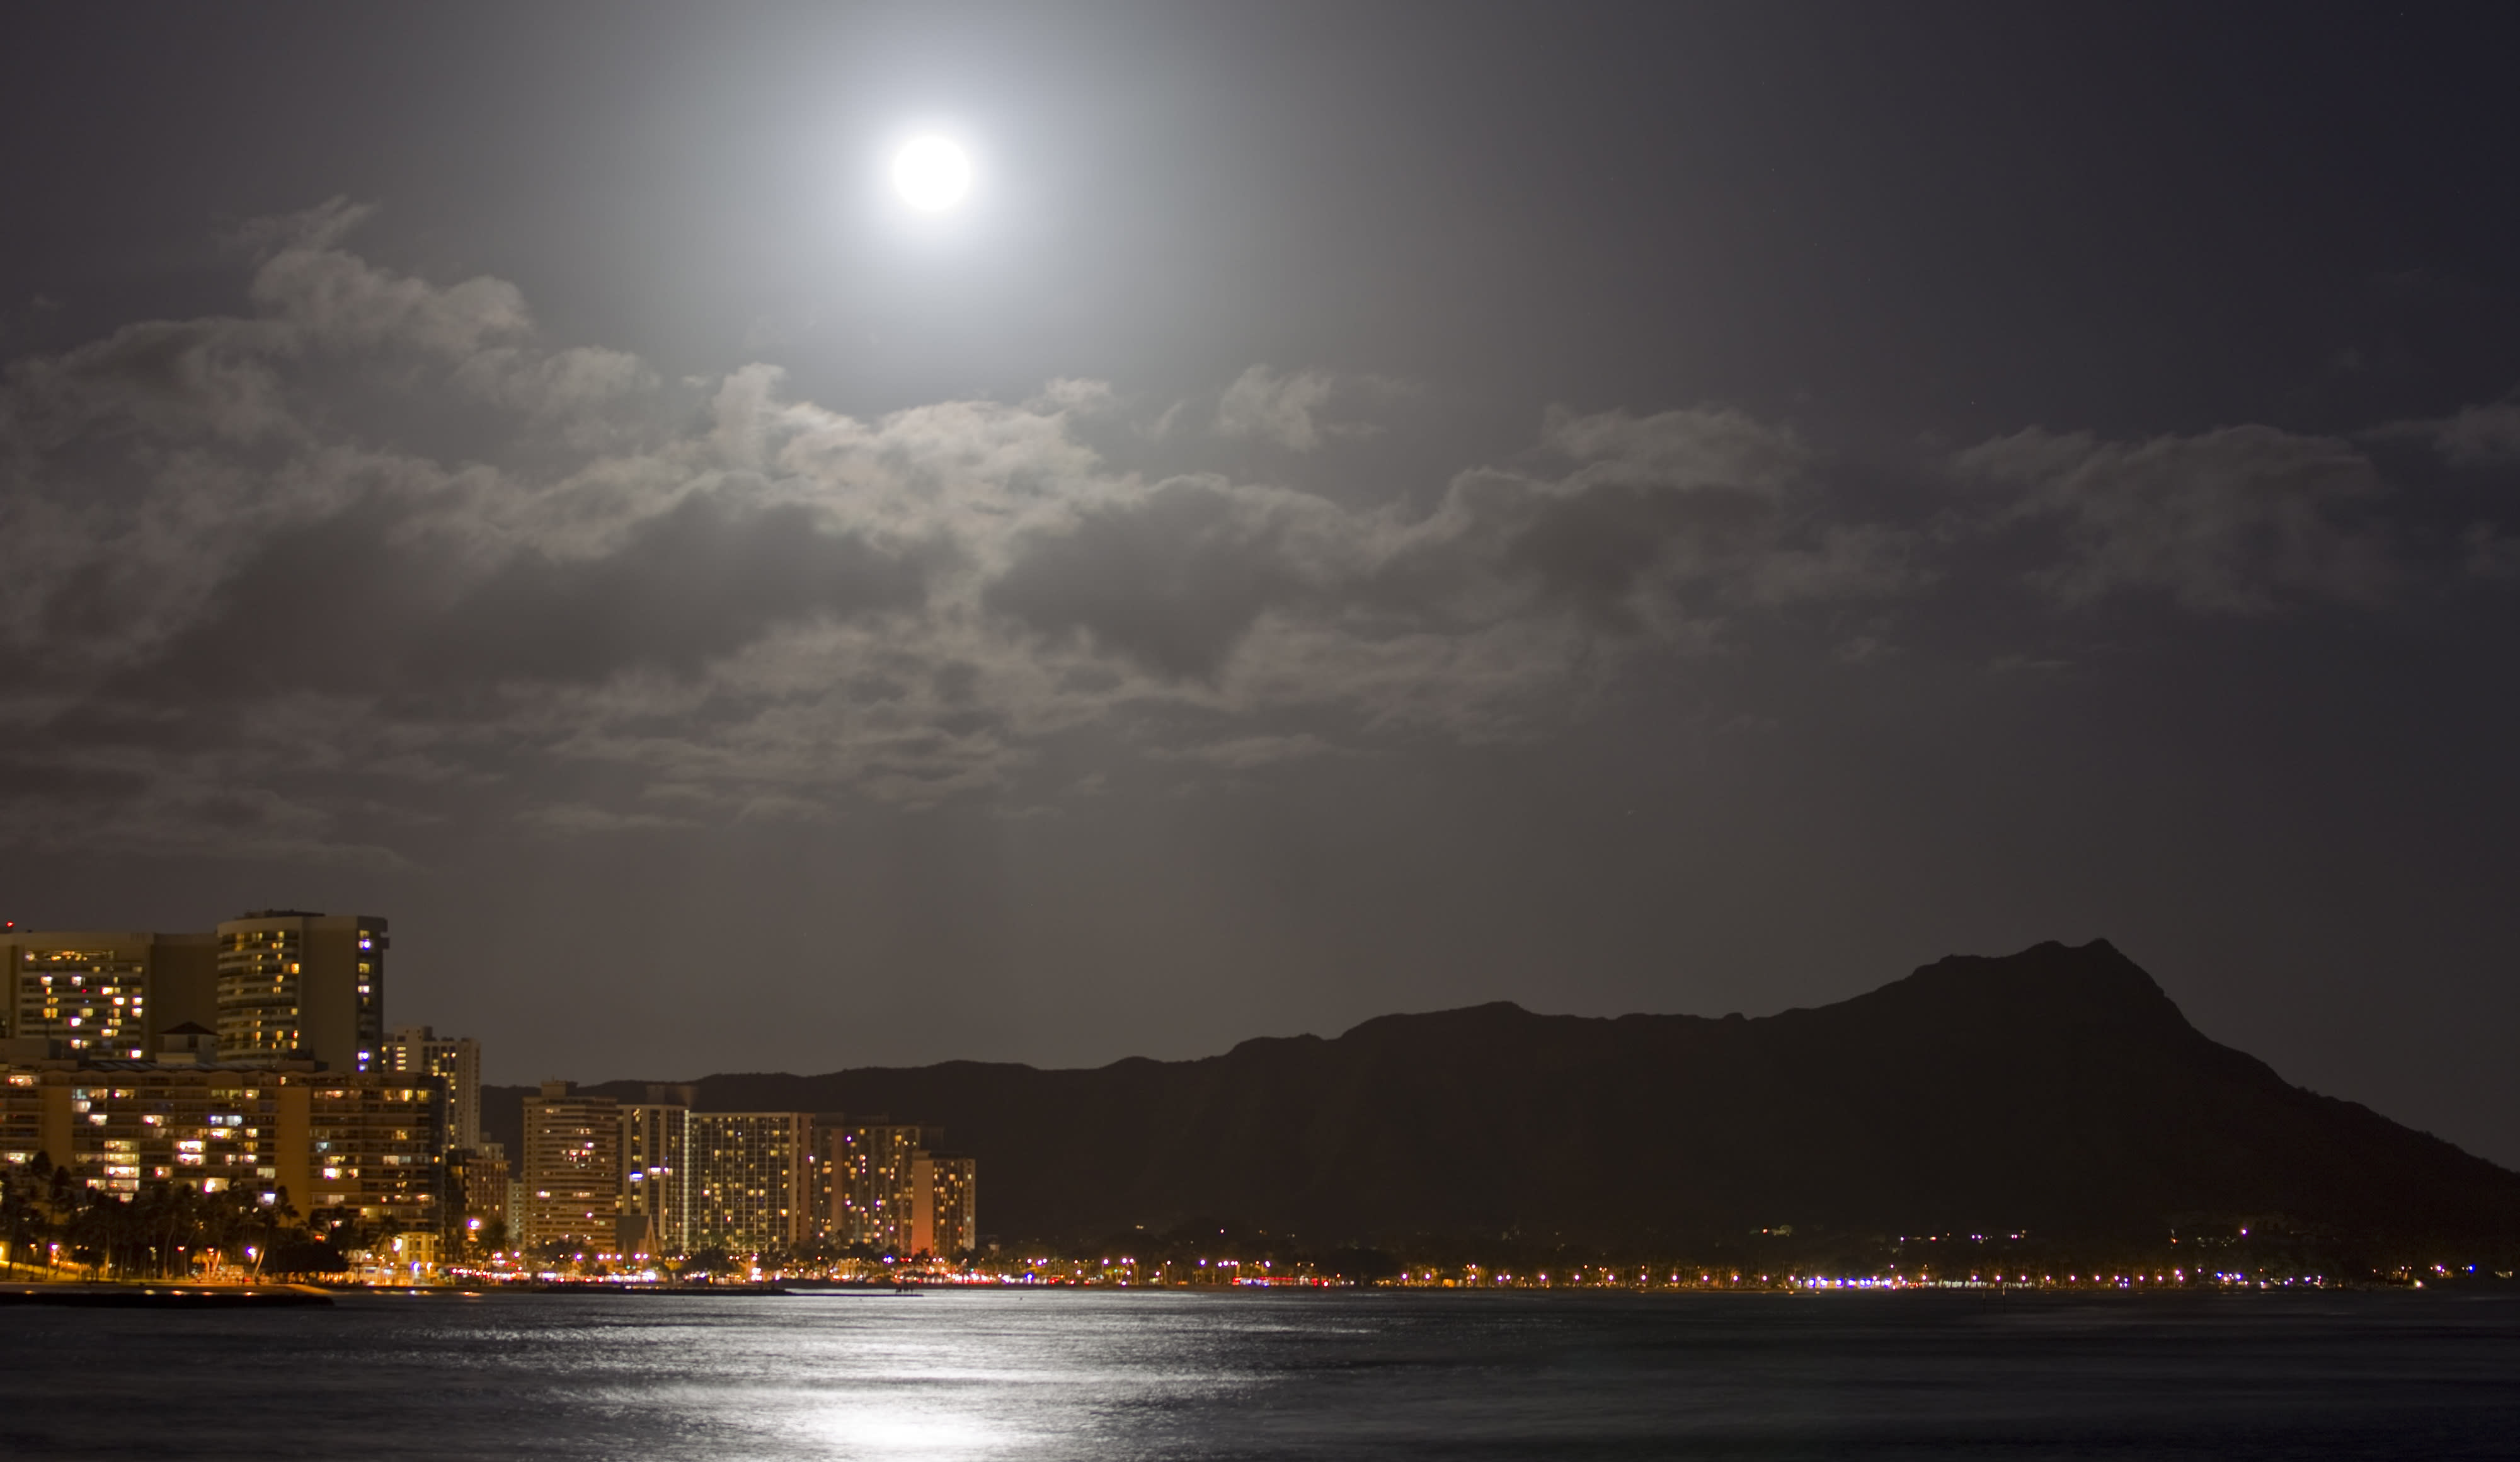 """A supermoon lights up Waikiki and Diamond Head Saturday, May 5, 2012, in Honolulu. A """"supermoon"""" event happens when the moon is closest to the earth therefore the biggest and brightest full moon of the year. (AP Photo/Eugene Tanner)"""